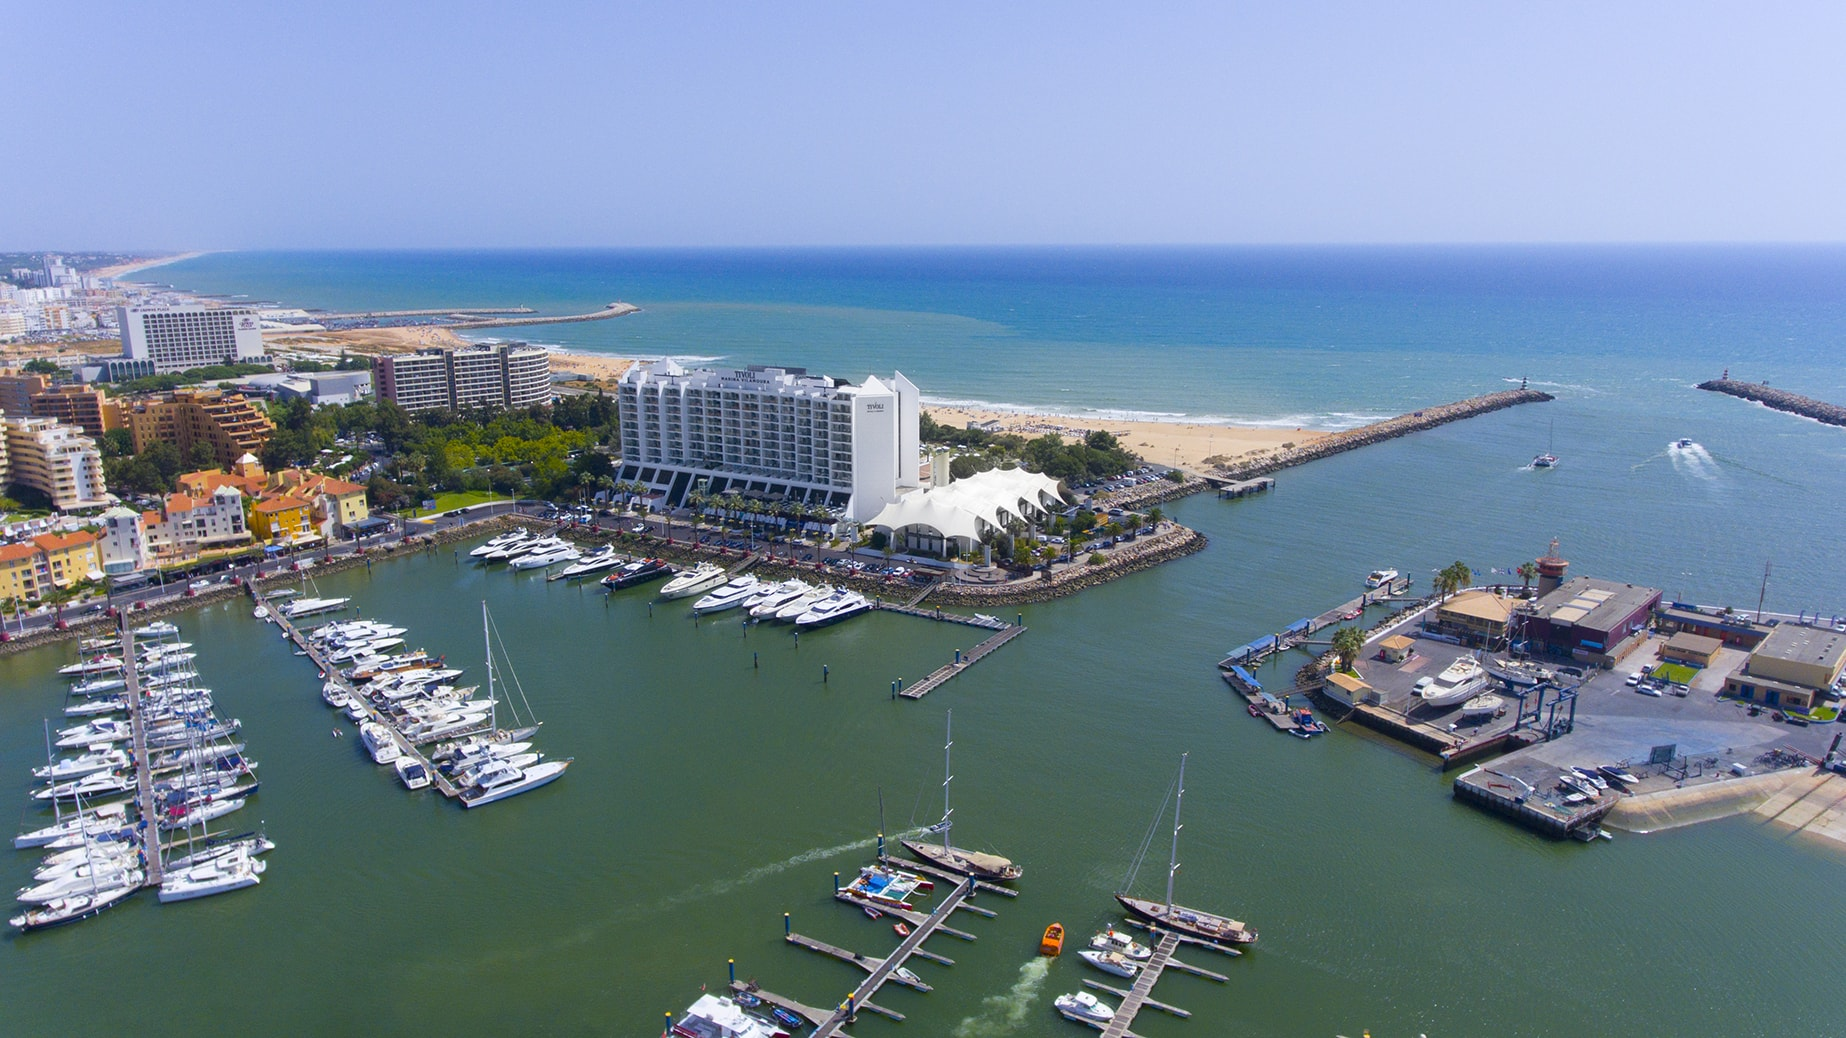 Transfers from / to Tivoli Marina Vilamoura